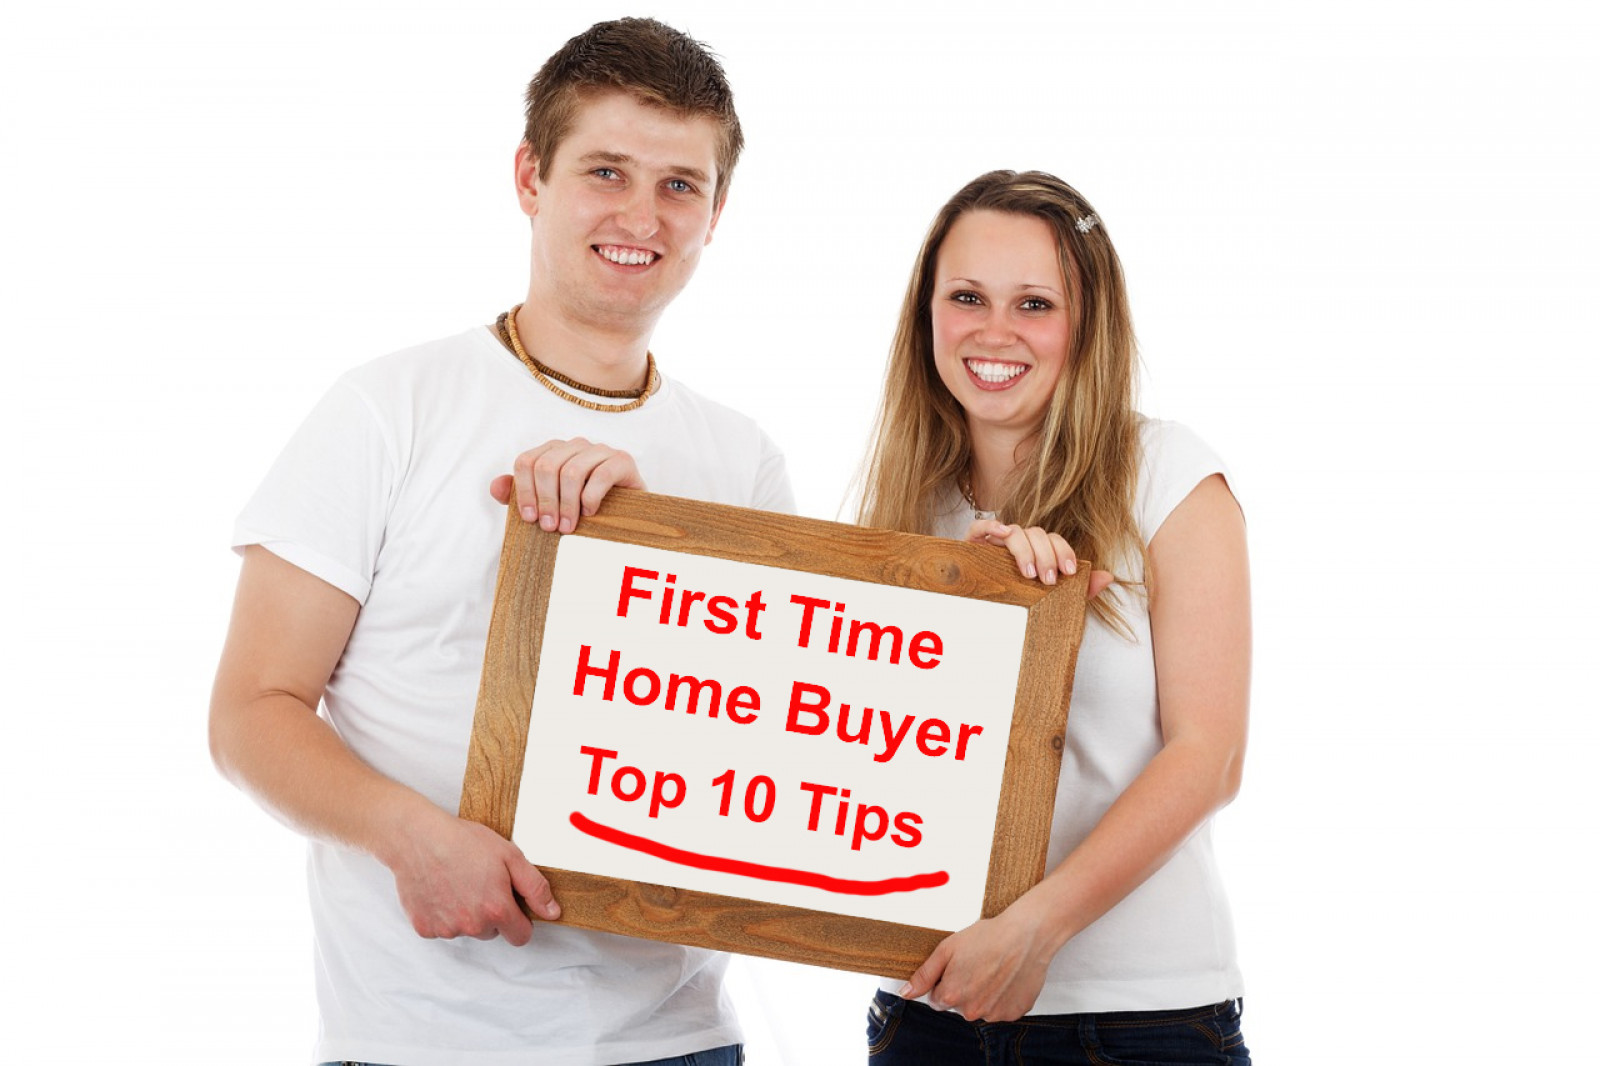 First Time Home Buyer | 10 Tips for Buying Your New Home